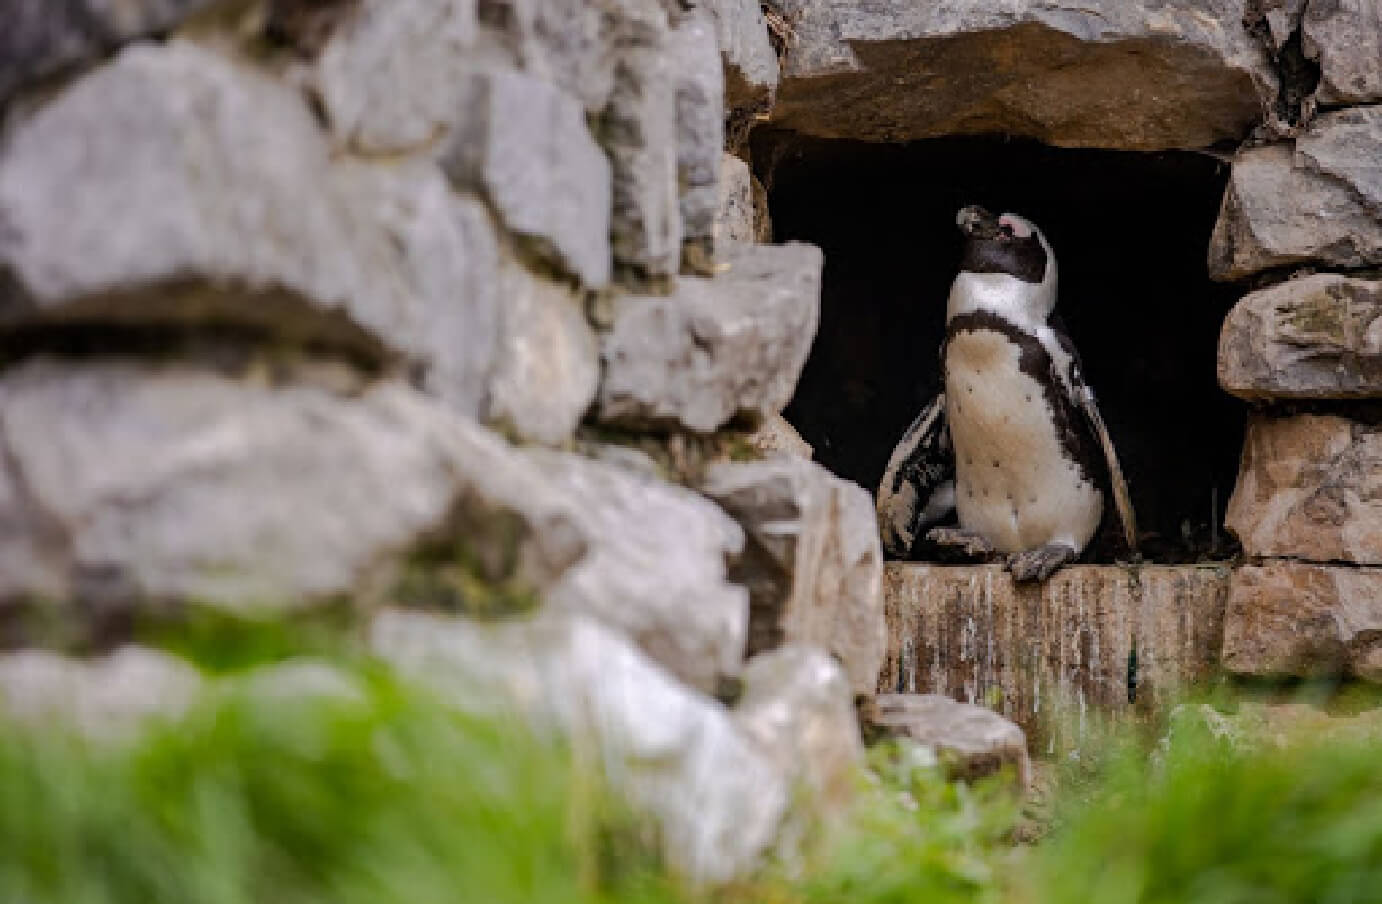 Photograph of a penguin sitting on a rock